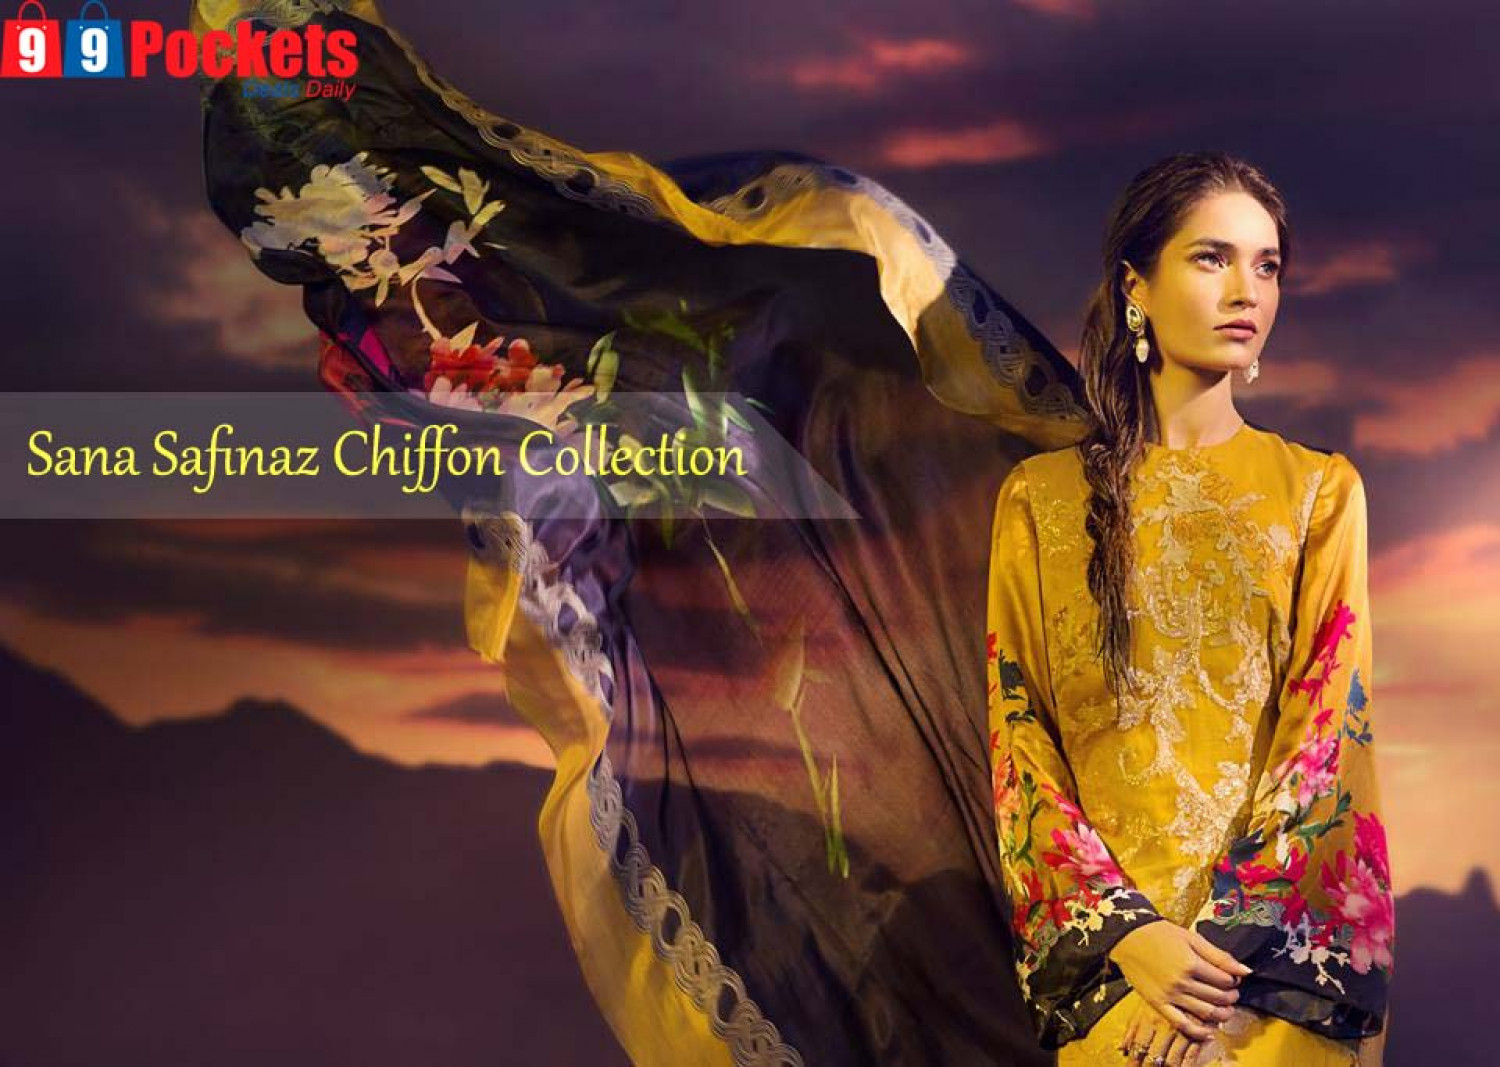 Sana Safinaz Chiffon Collection Infographic